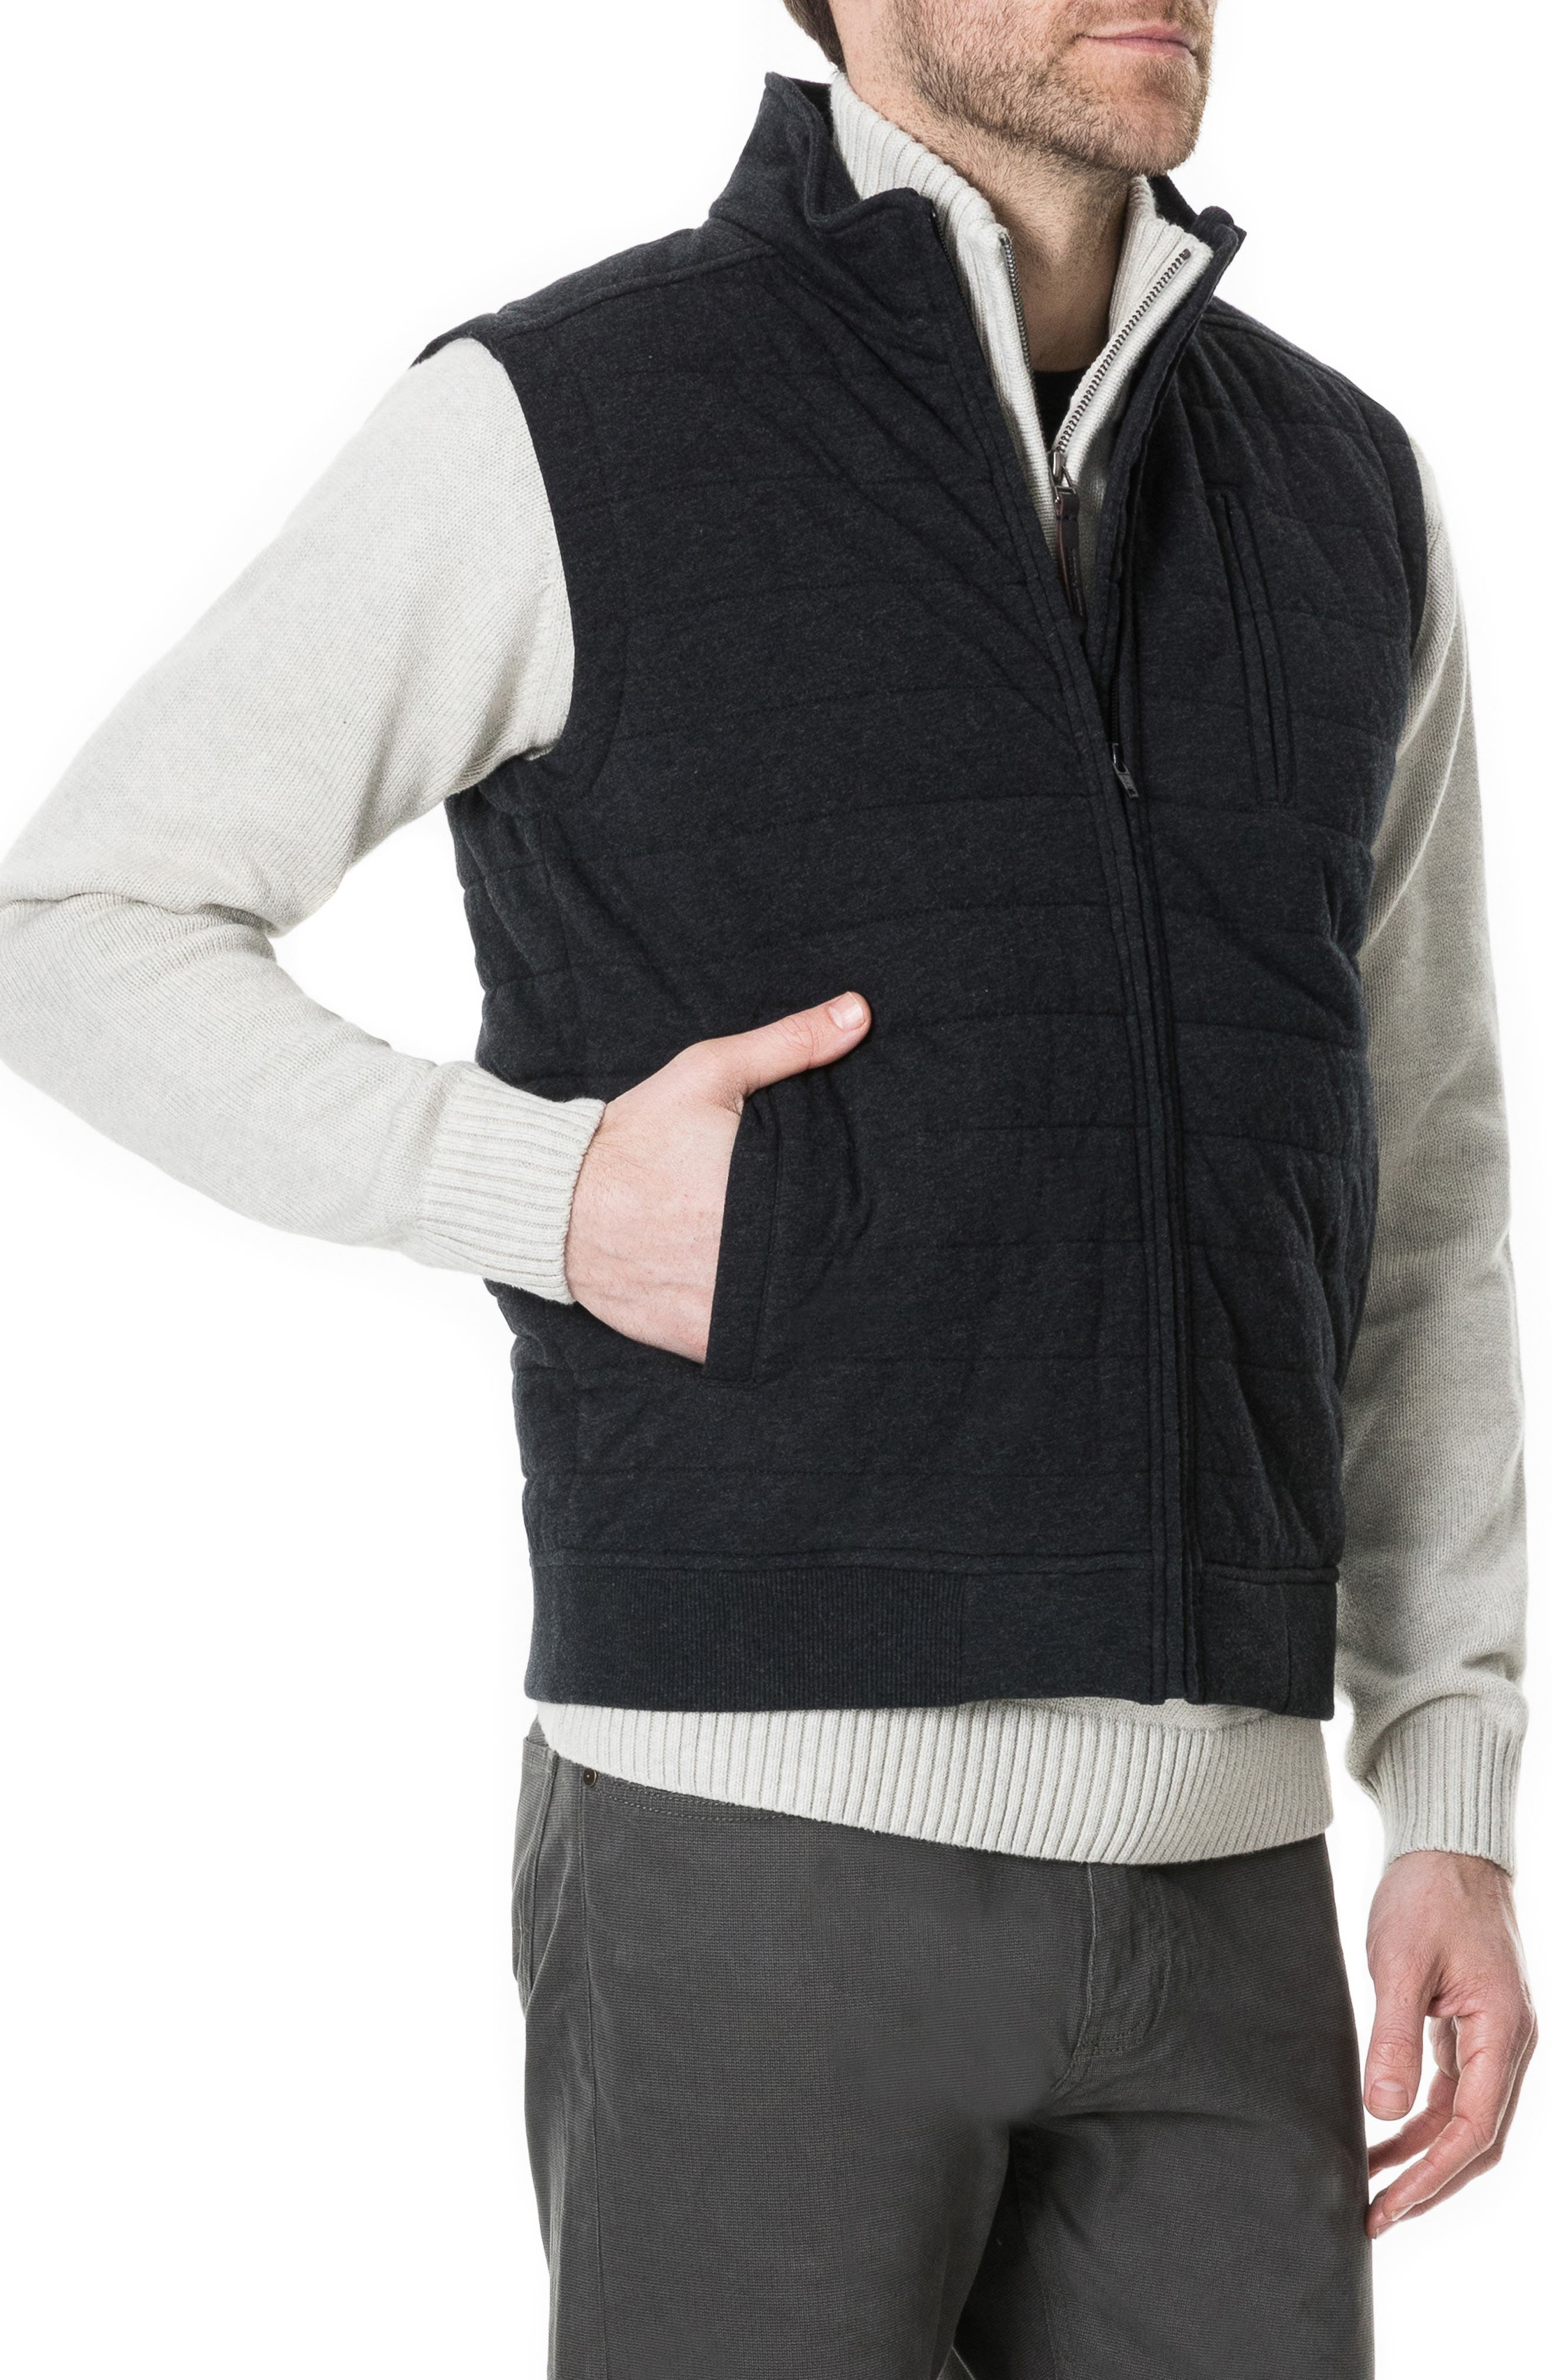 Gould Road Quilted Cotton Flannel Vest,                             Alternate thumbnail 3, color,                             020